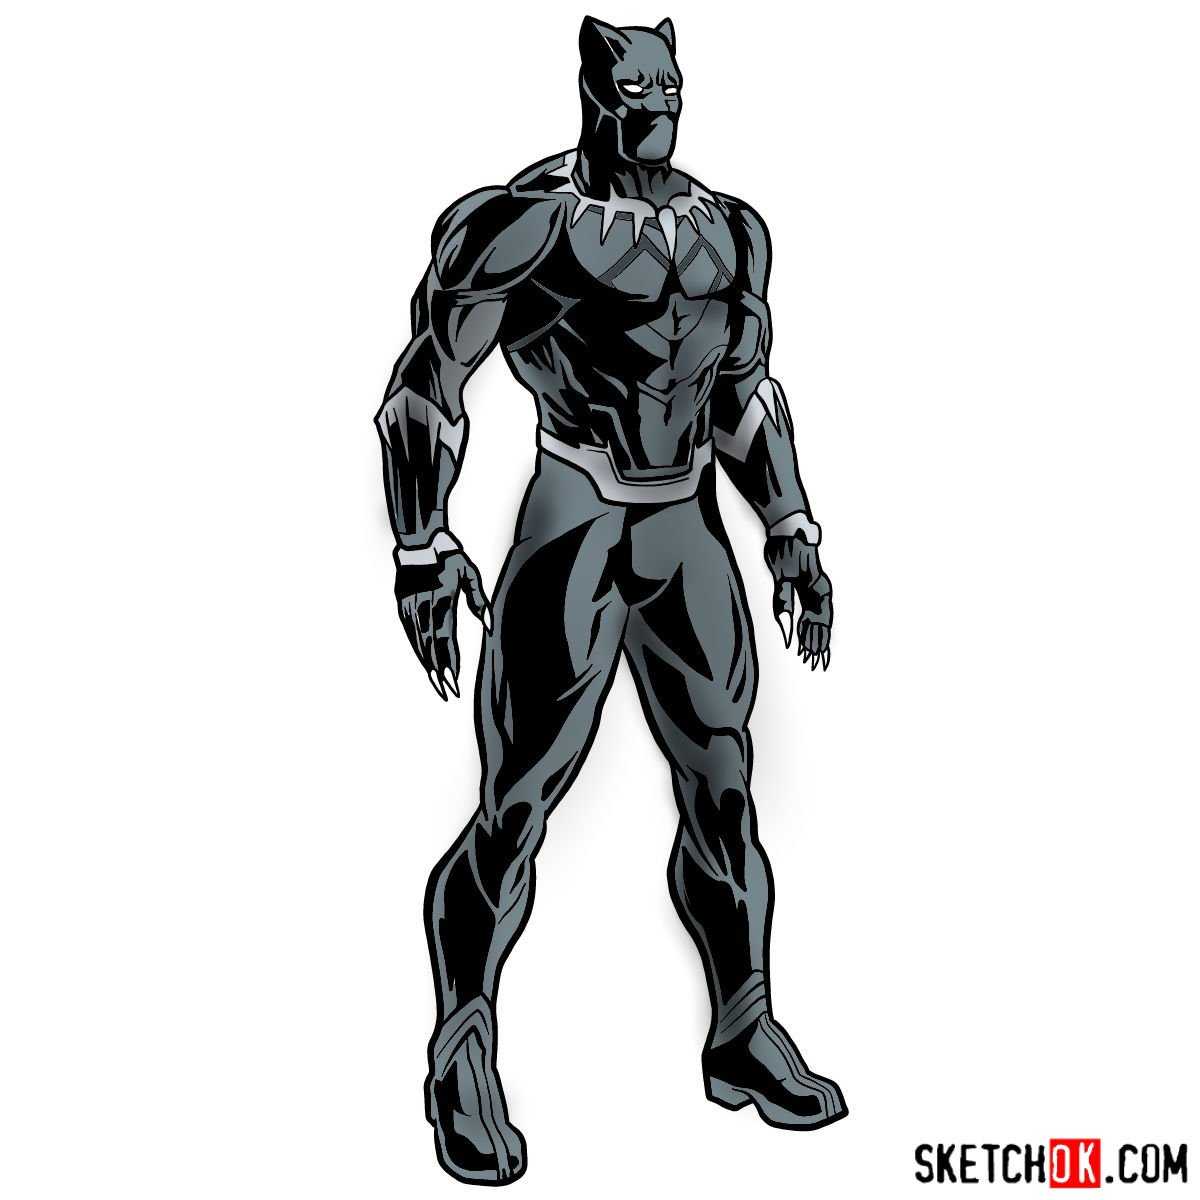 How to draw Black Panther from Infinity War 2018 film